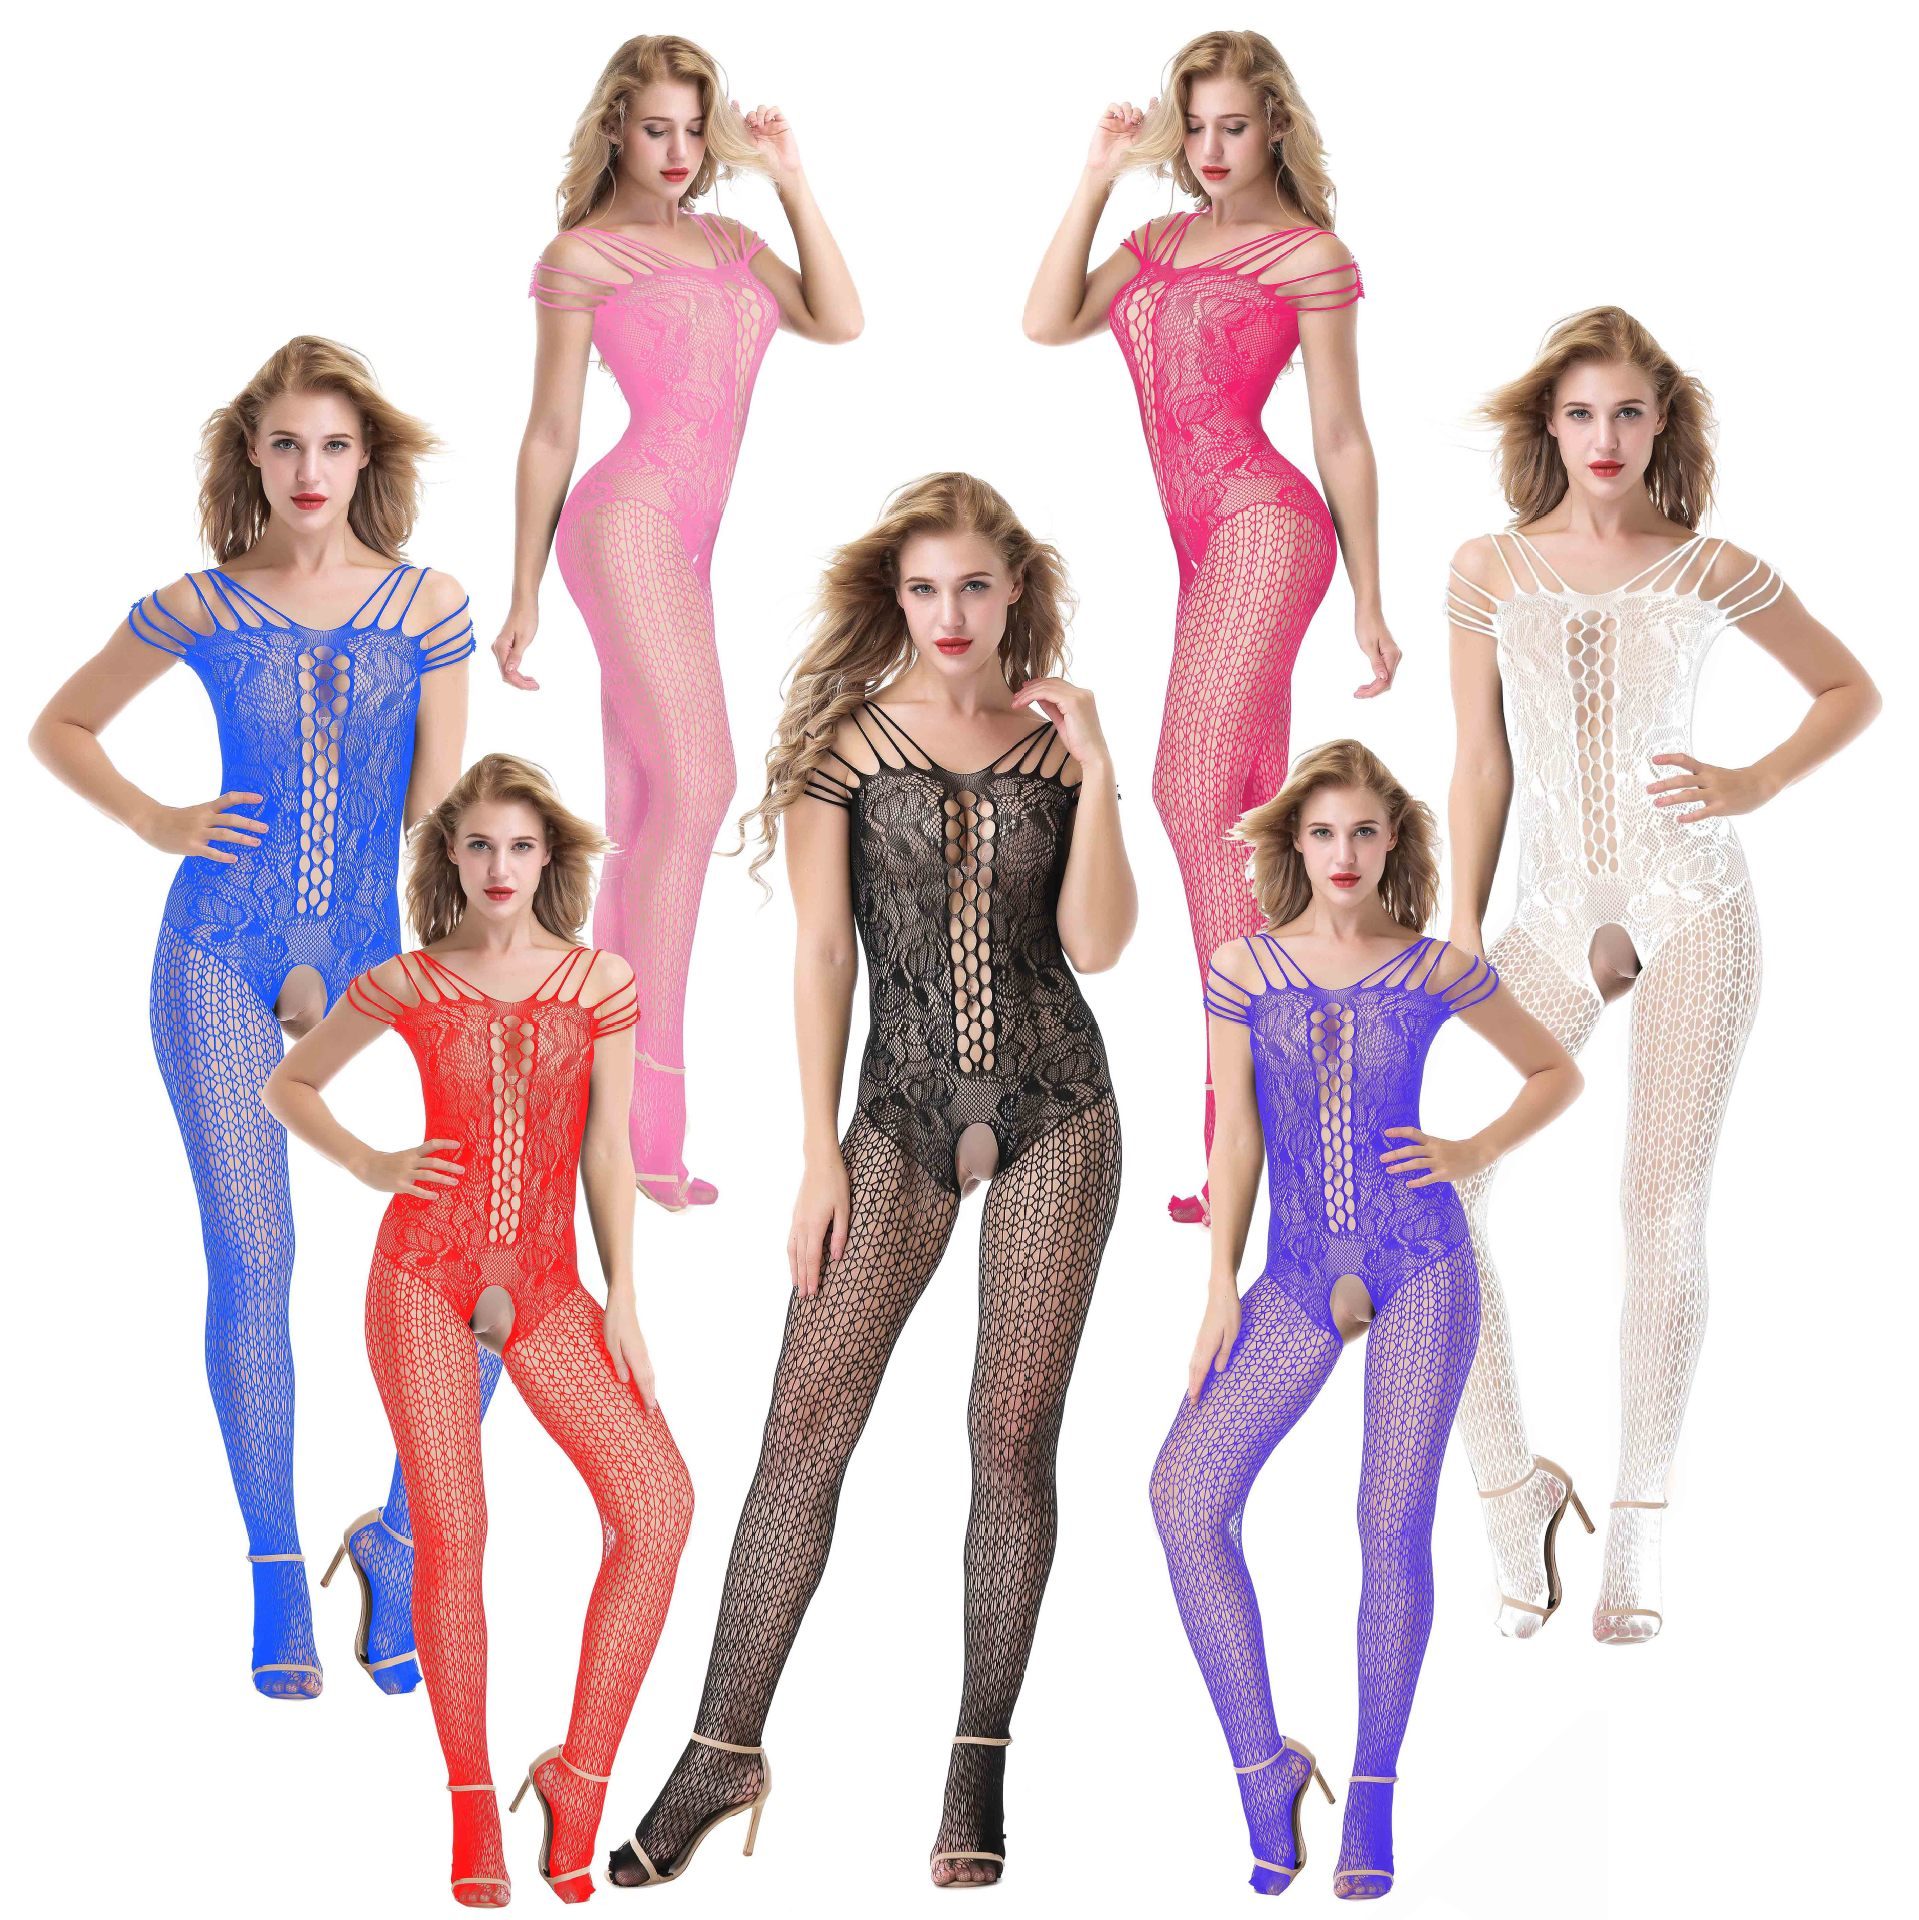 81e57c3070c Sexy Lingerie Crotchless Bodystocking Plus Size Open Crotch Teddy ...